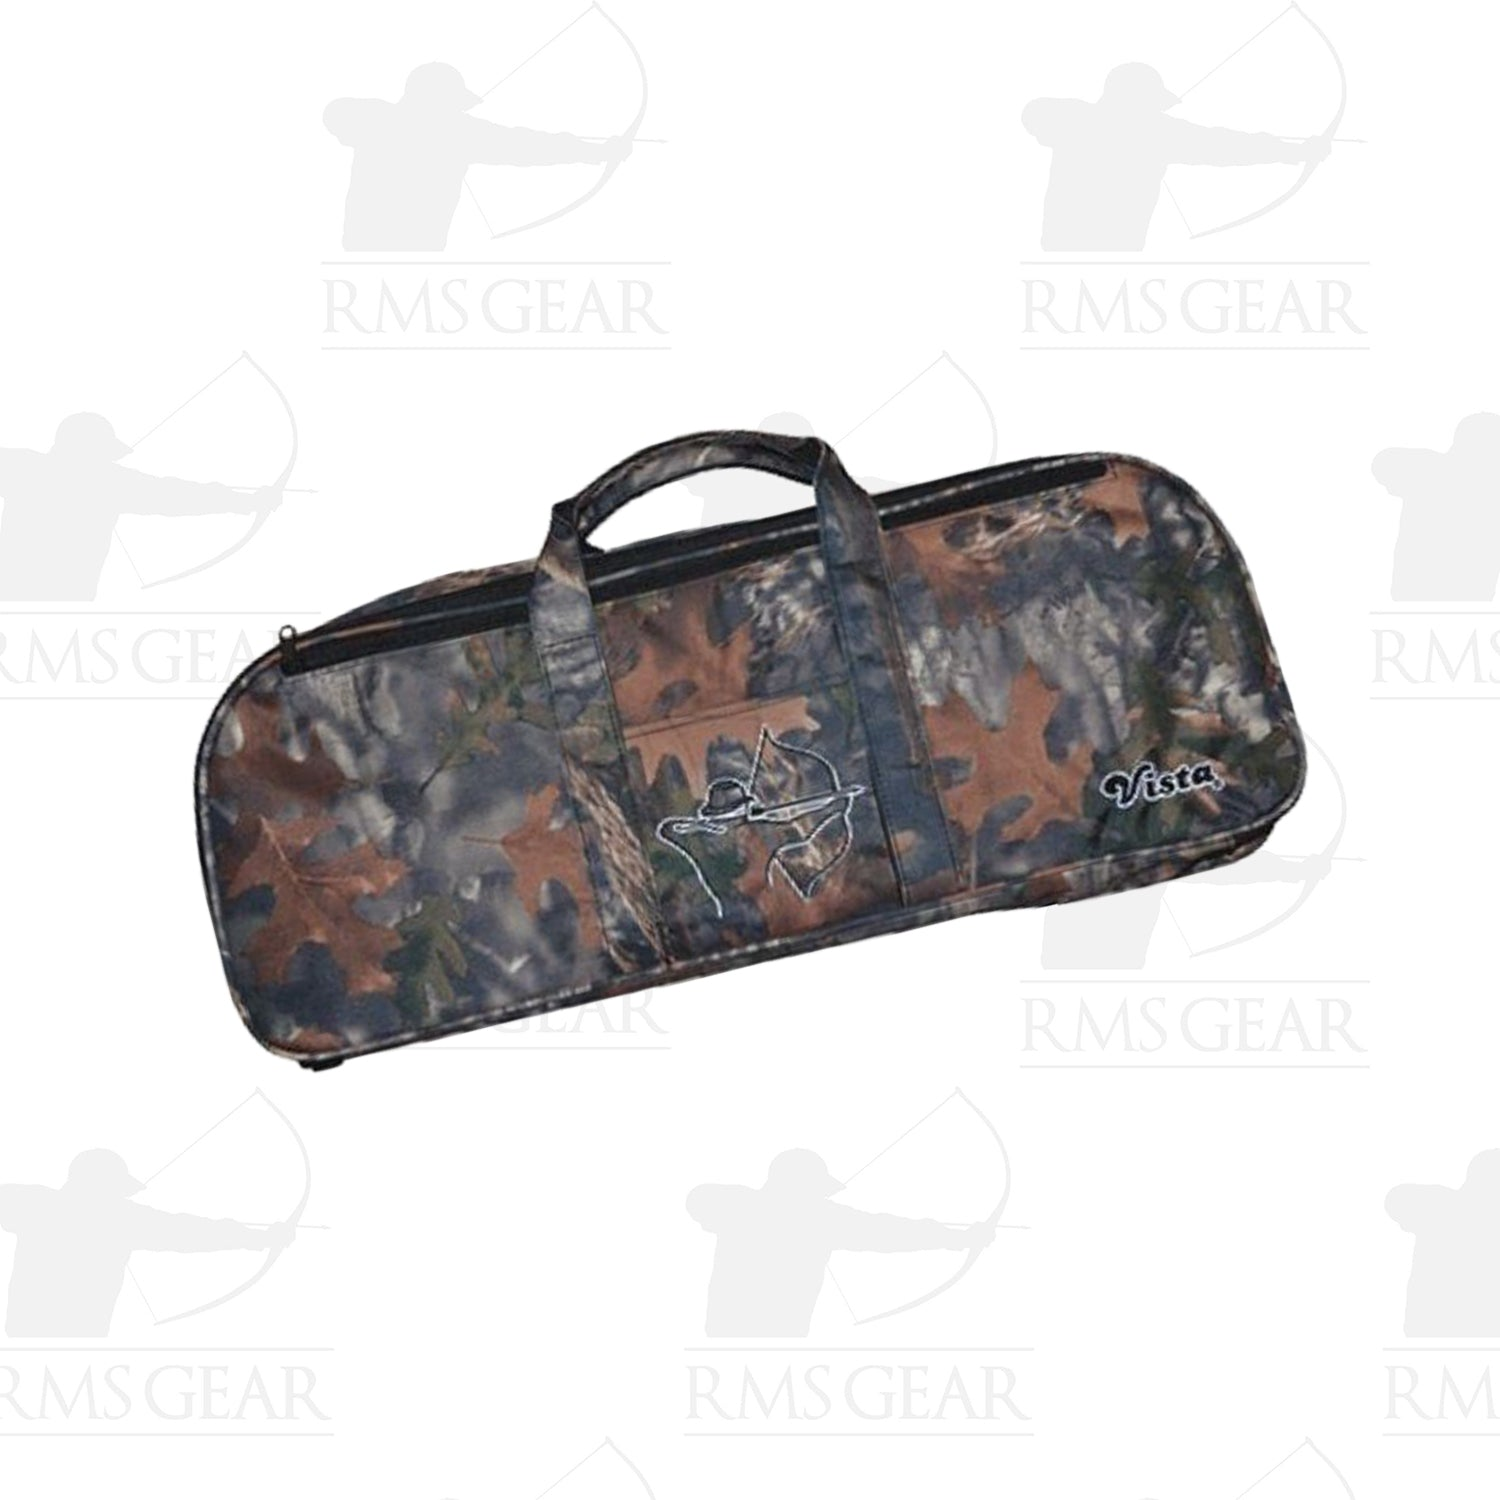 Vista Compact Take Down Recurve Case